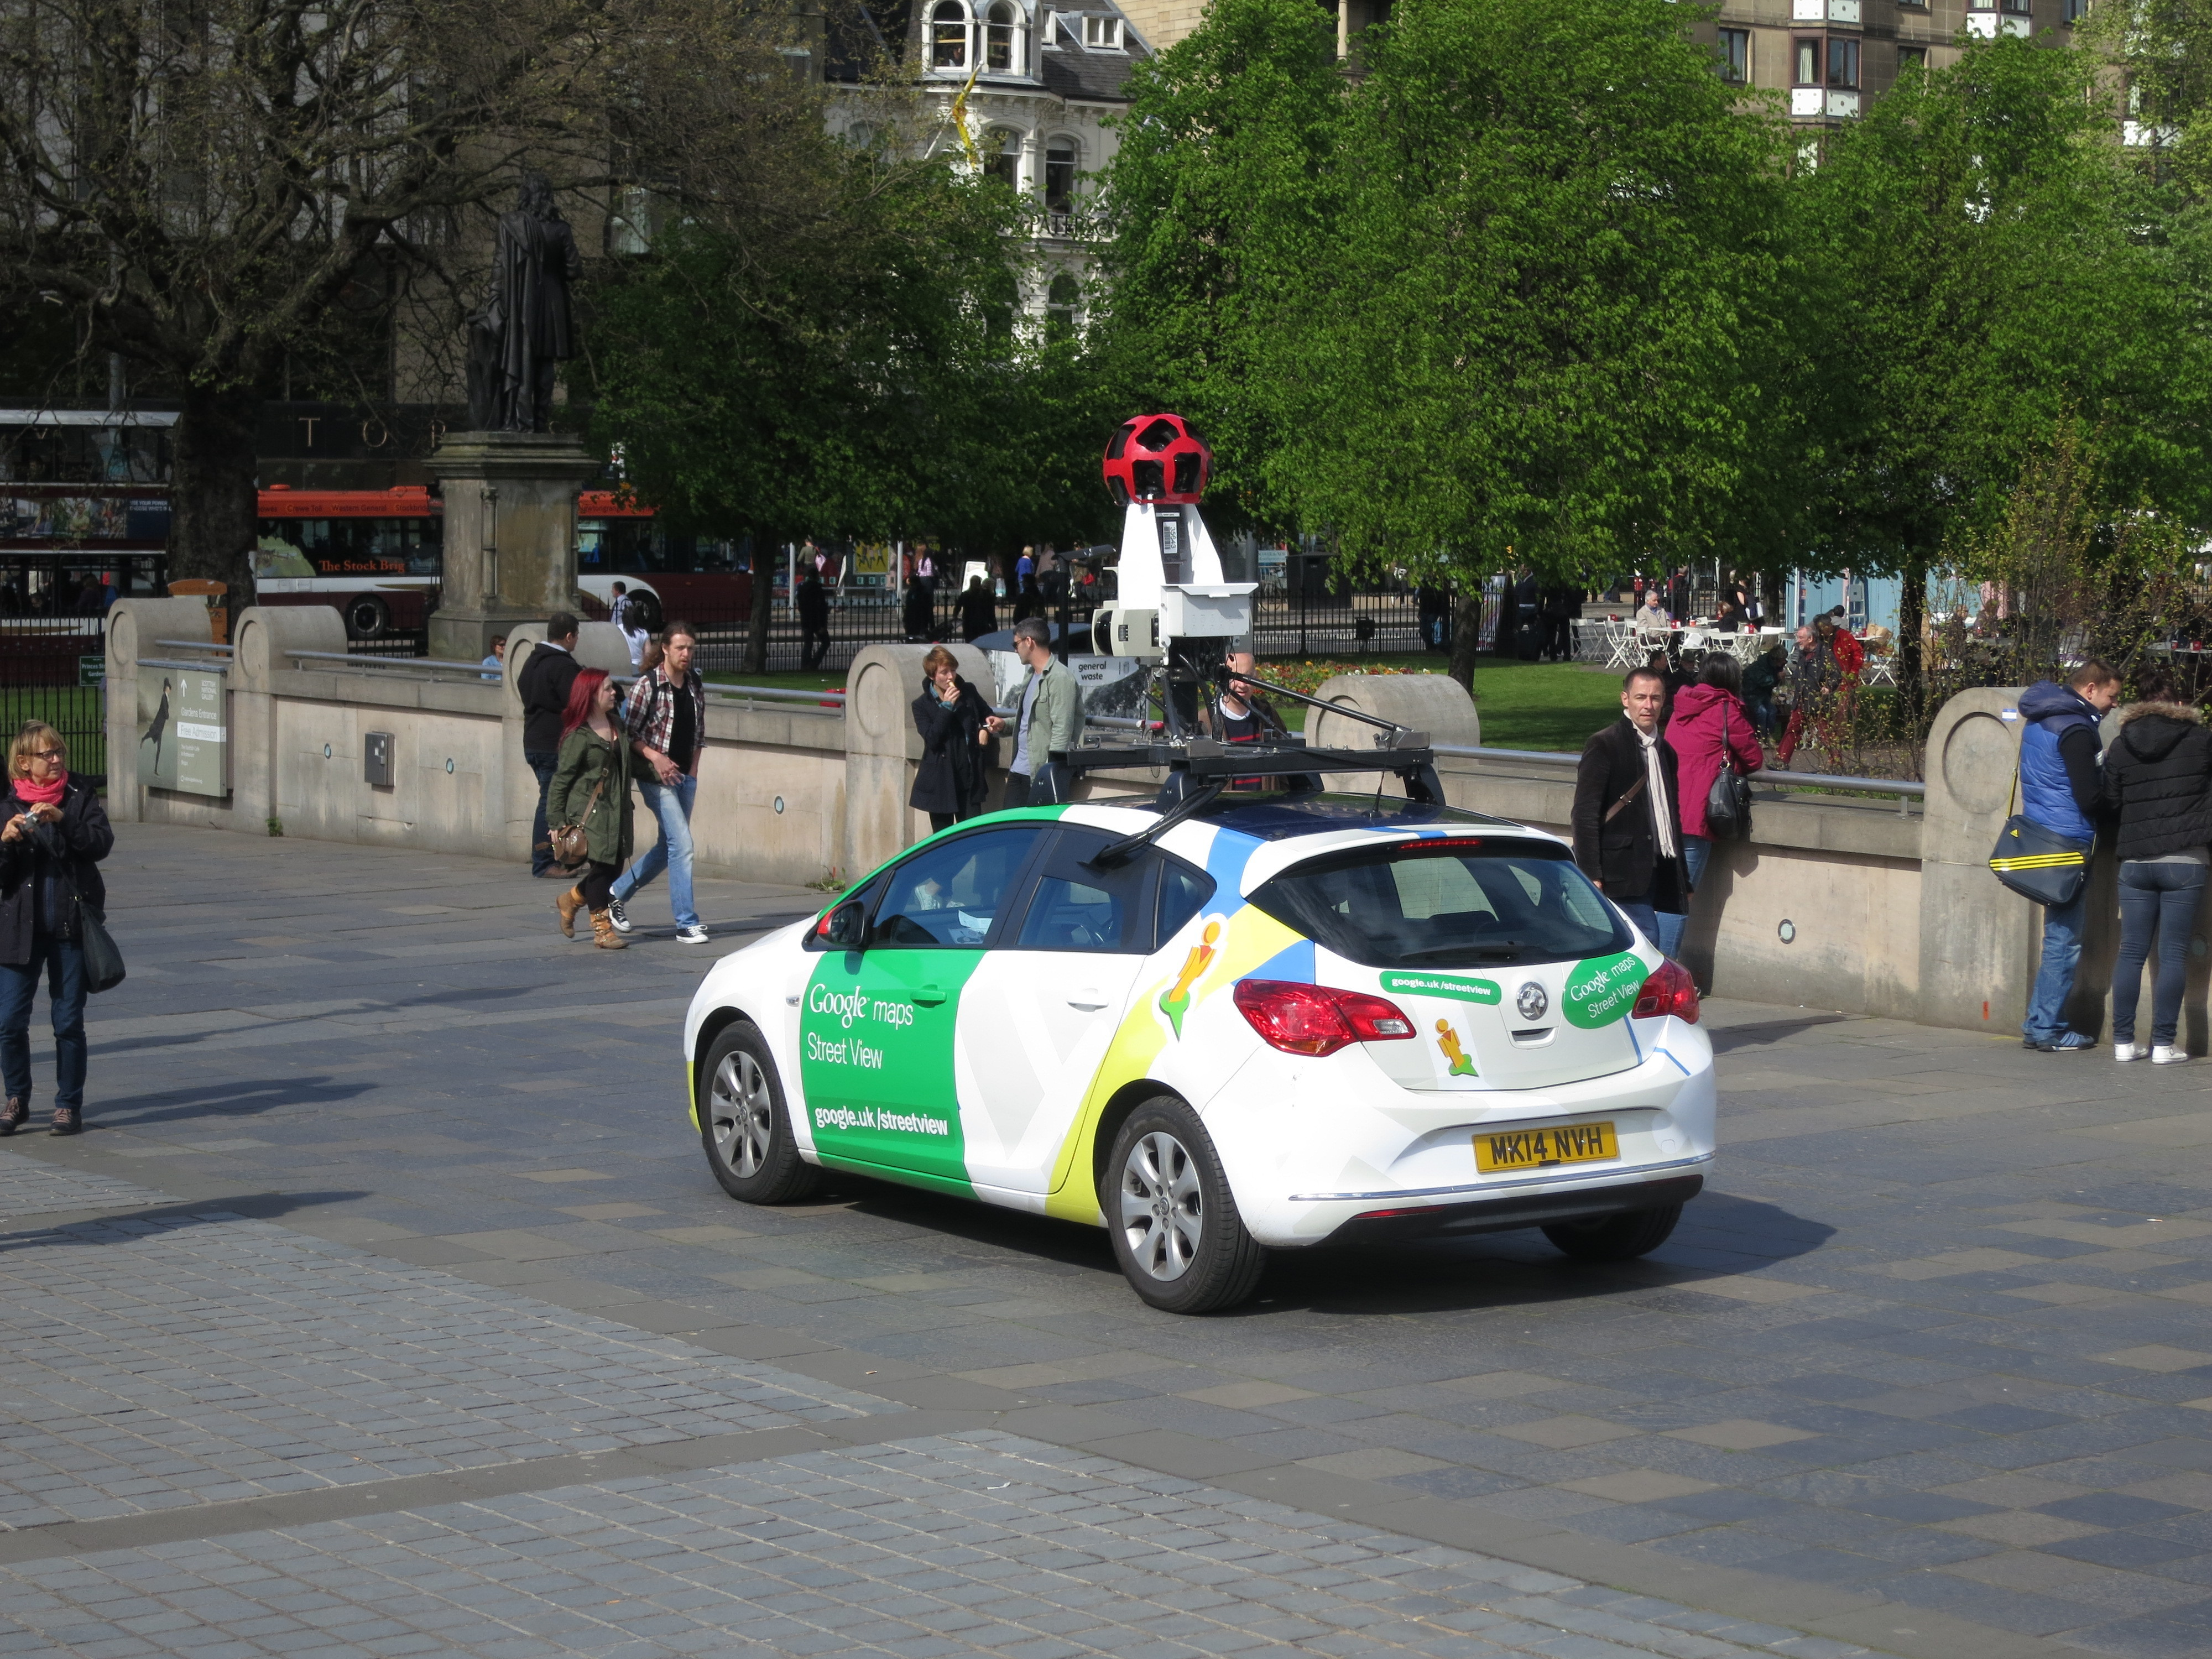 How To Change Street View In Google Maps on